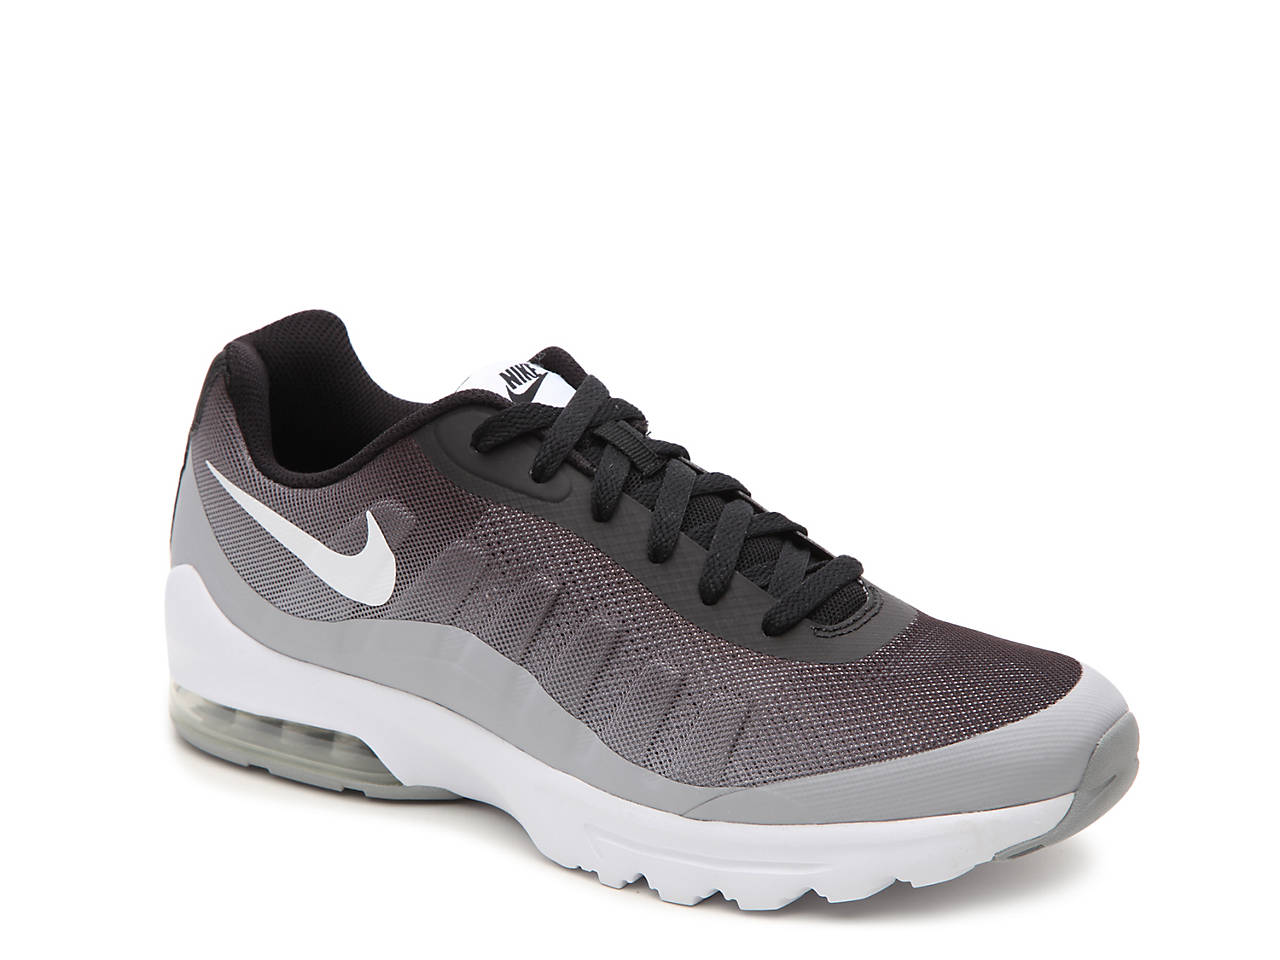 newest 1db61 fb4c0 Nike. Air Max Invigor Sneaker - Mens